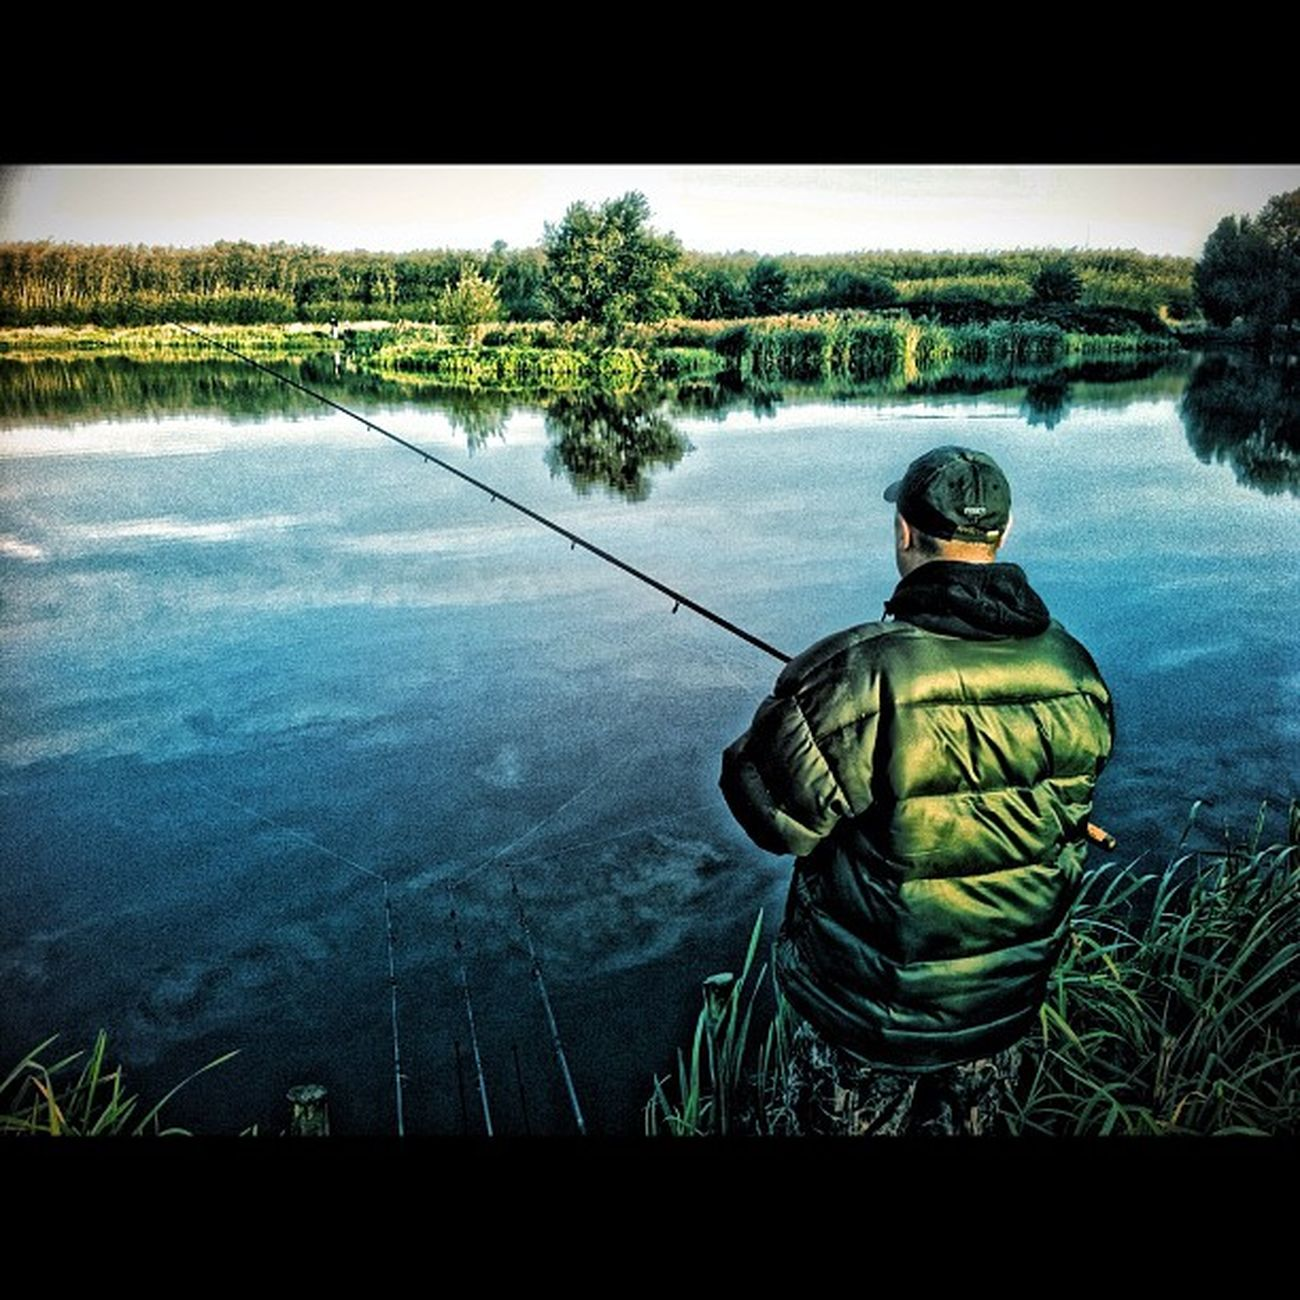 Pike spinner Fishing HDR Angling Ukigers Bedsigers